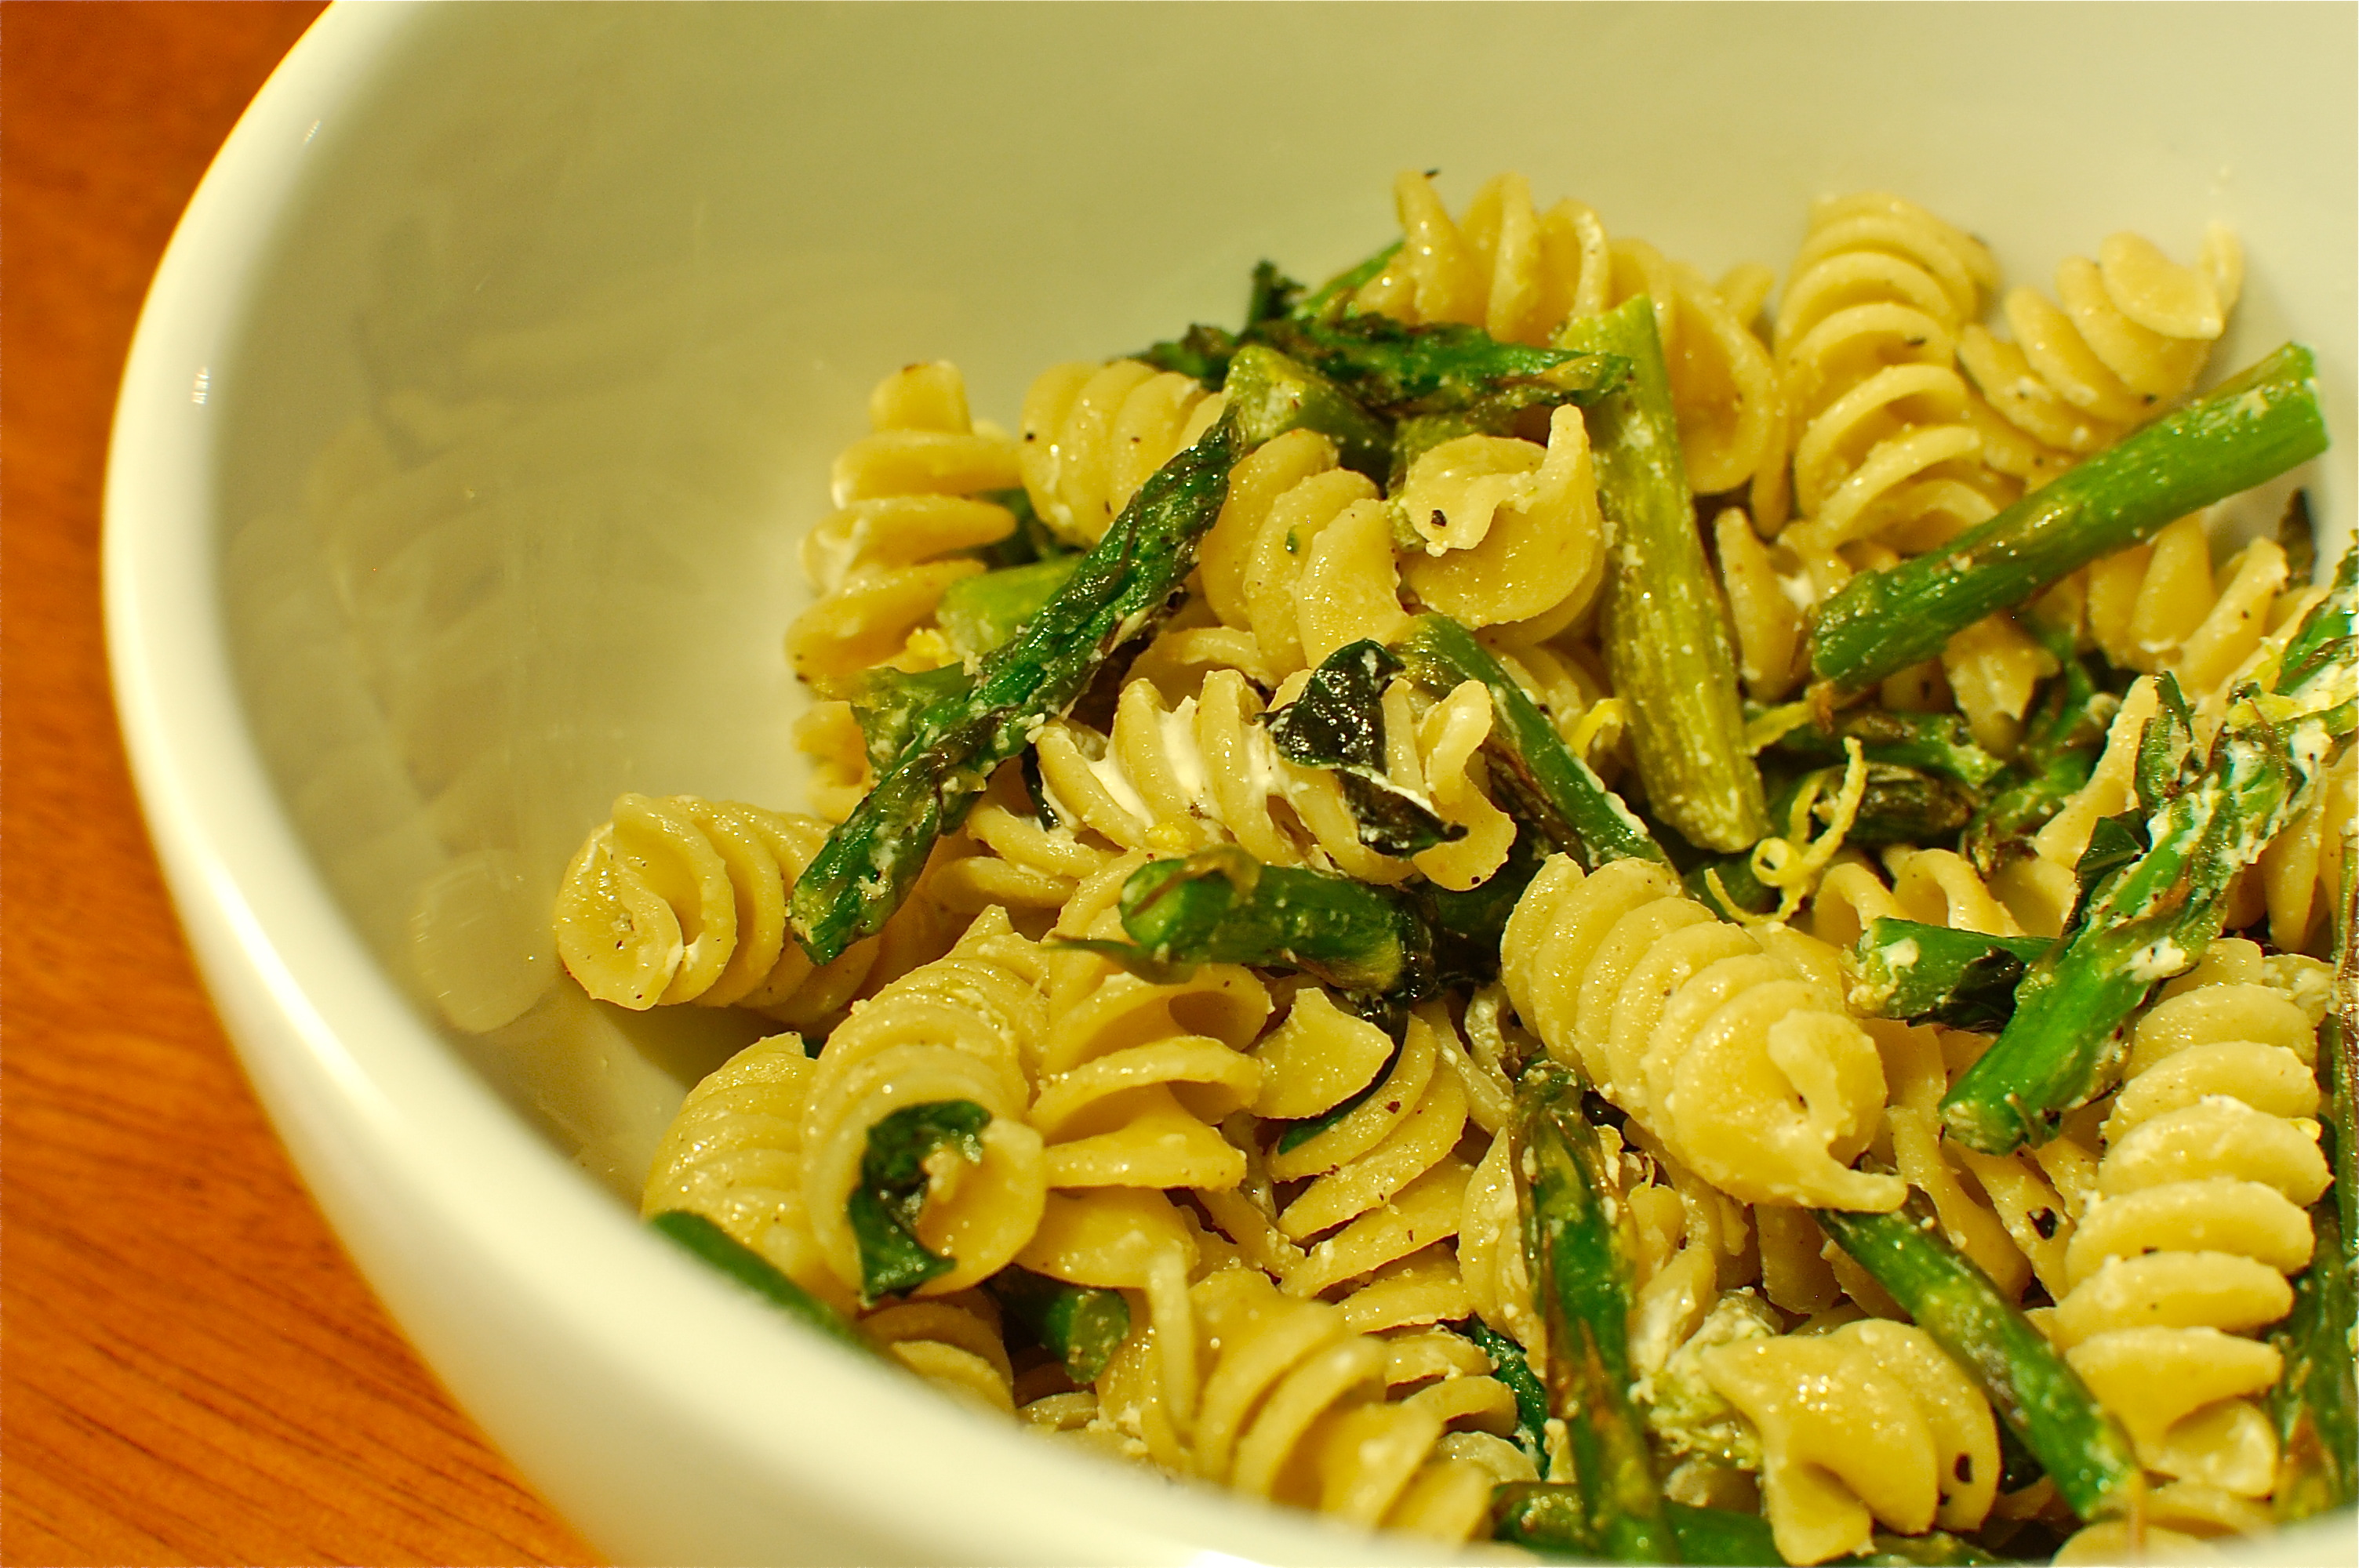 Pasta with Roasted Asparagus, Lemon Zest, and Goat Cheese